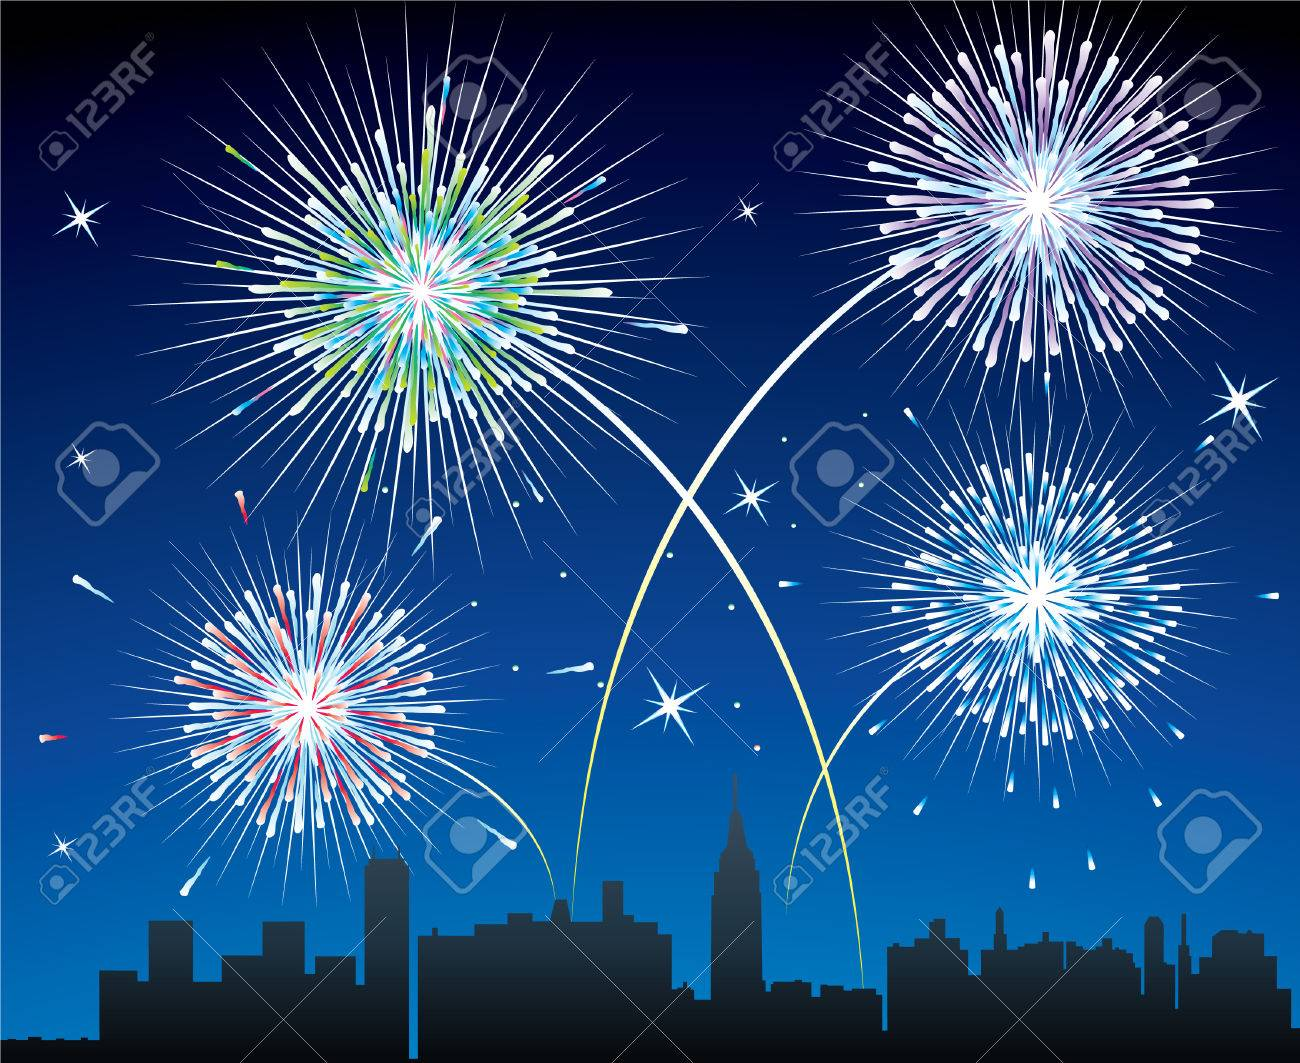 fireworks over a city Stock Vector - 6485999